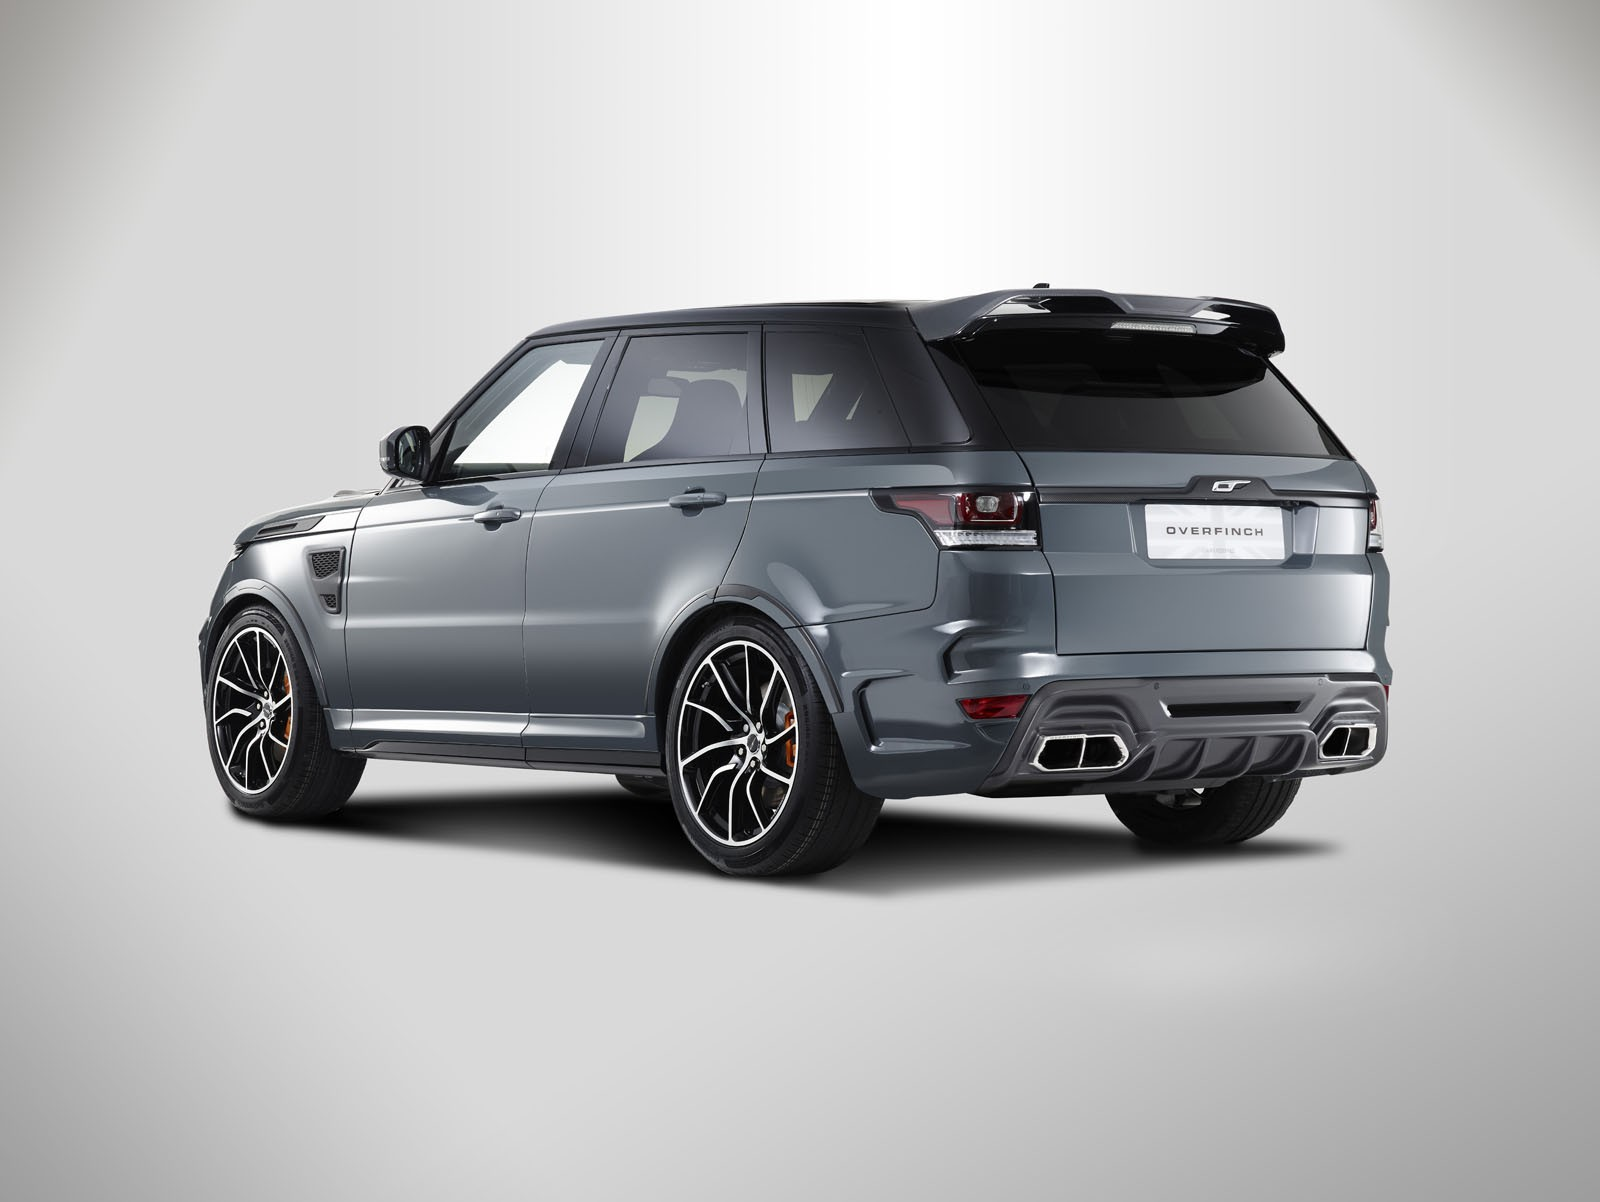 Used Range Rovers >> Overfinch Range Rover Sport Has Futuristic Body Kit and Carbon Fiber - autoevolution